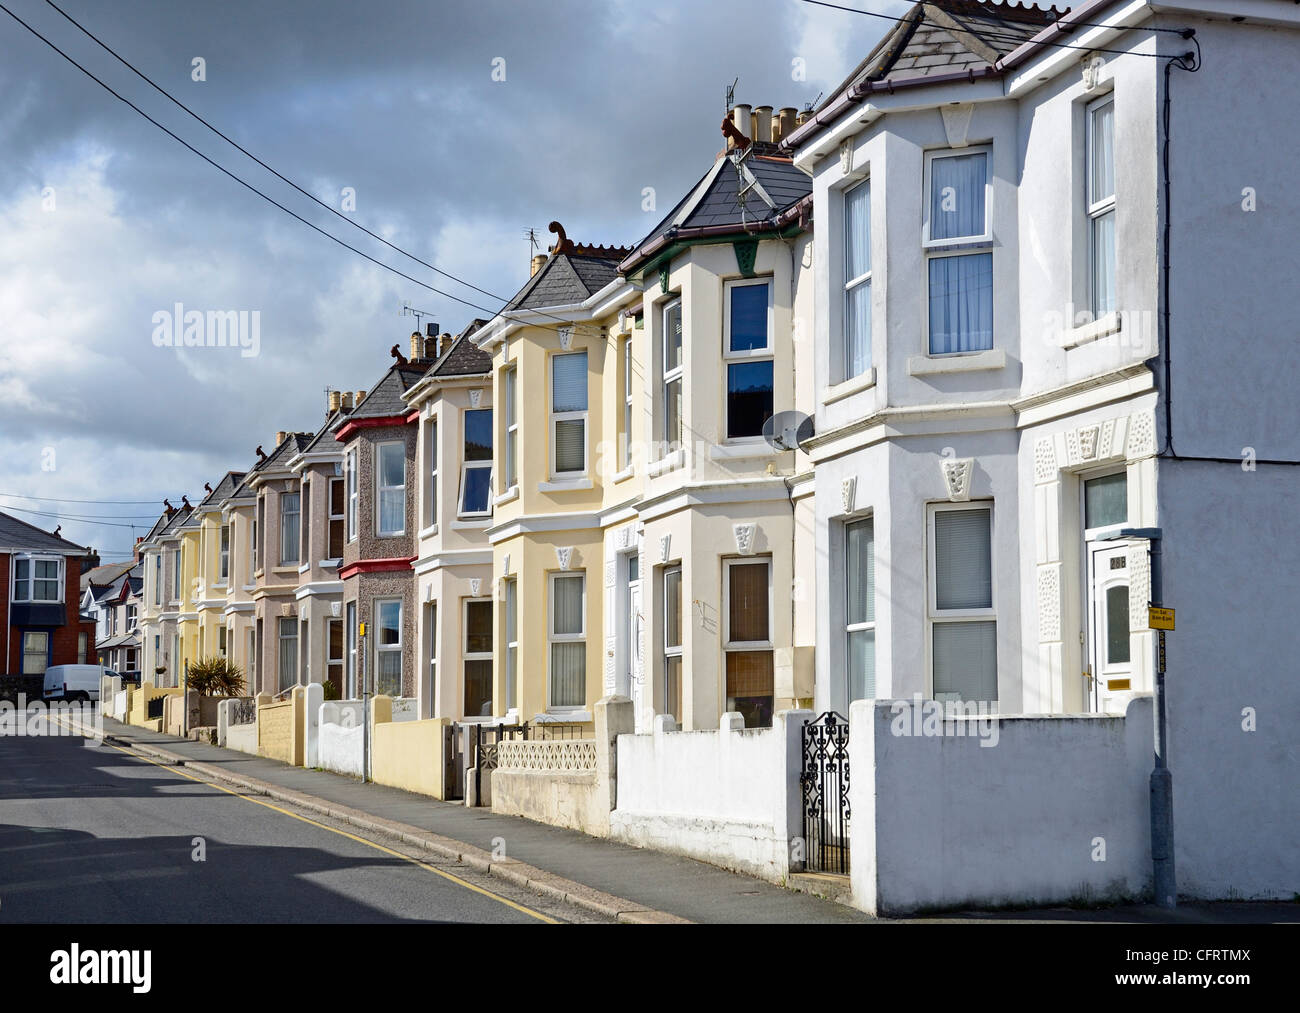 A street of terraced houses with bay windows, saltash, cornwall, uk - Stock Image